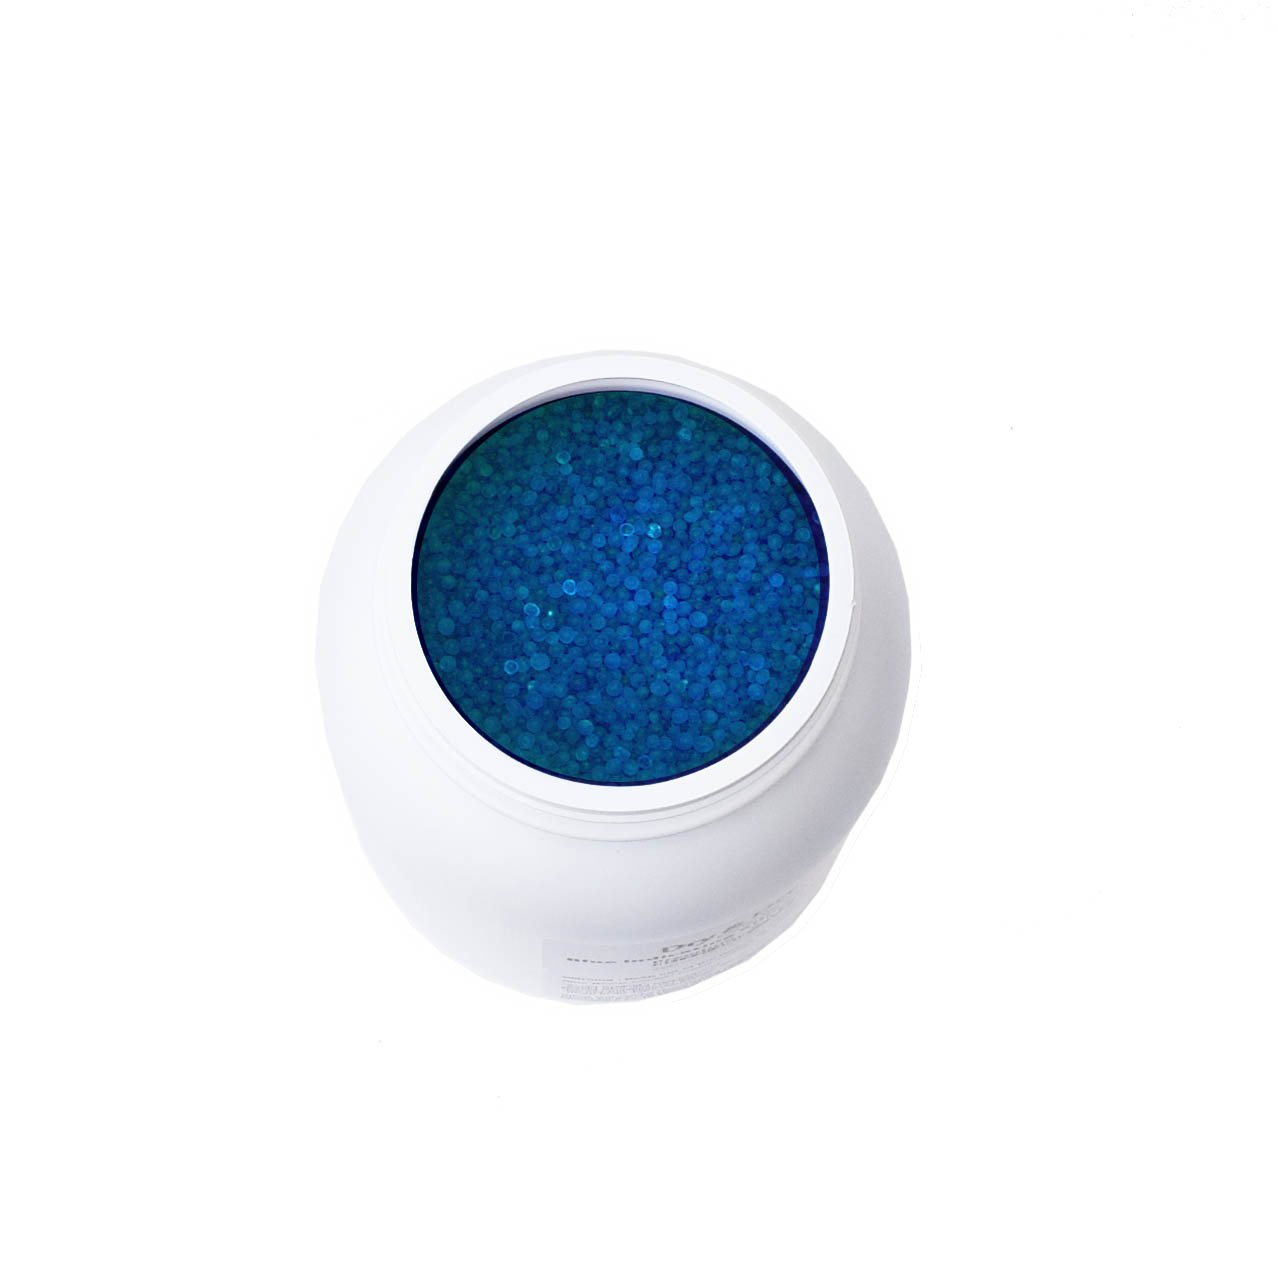 Dry & Dry [6 LBS] Blue Premium Indicating Silica Gel Beads(Industry Standard 2-4 mm) - Reusable Desiccant Beads